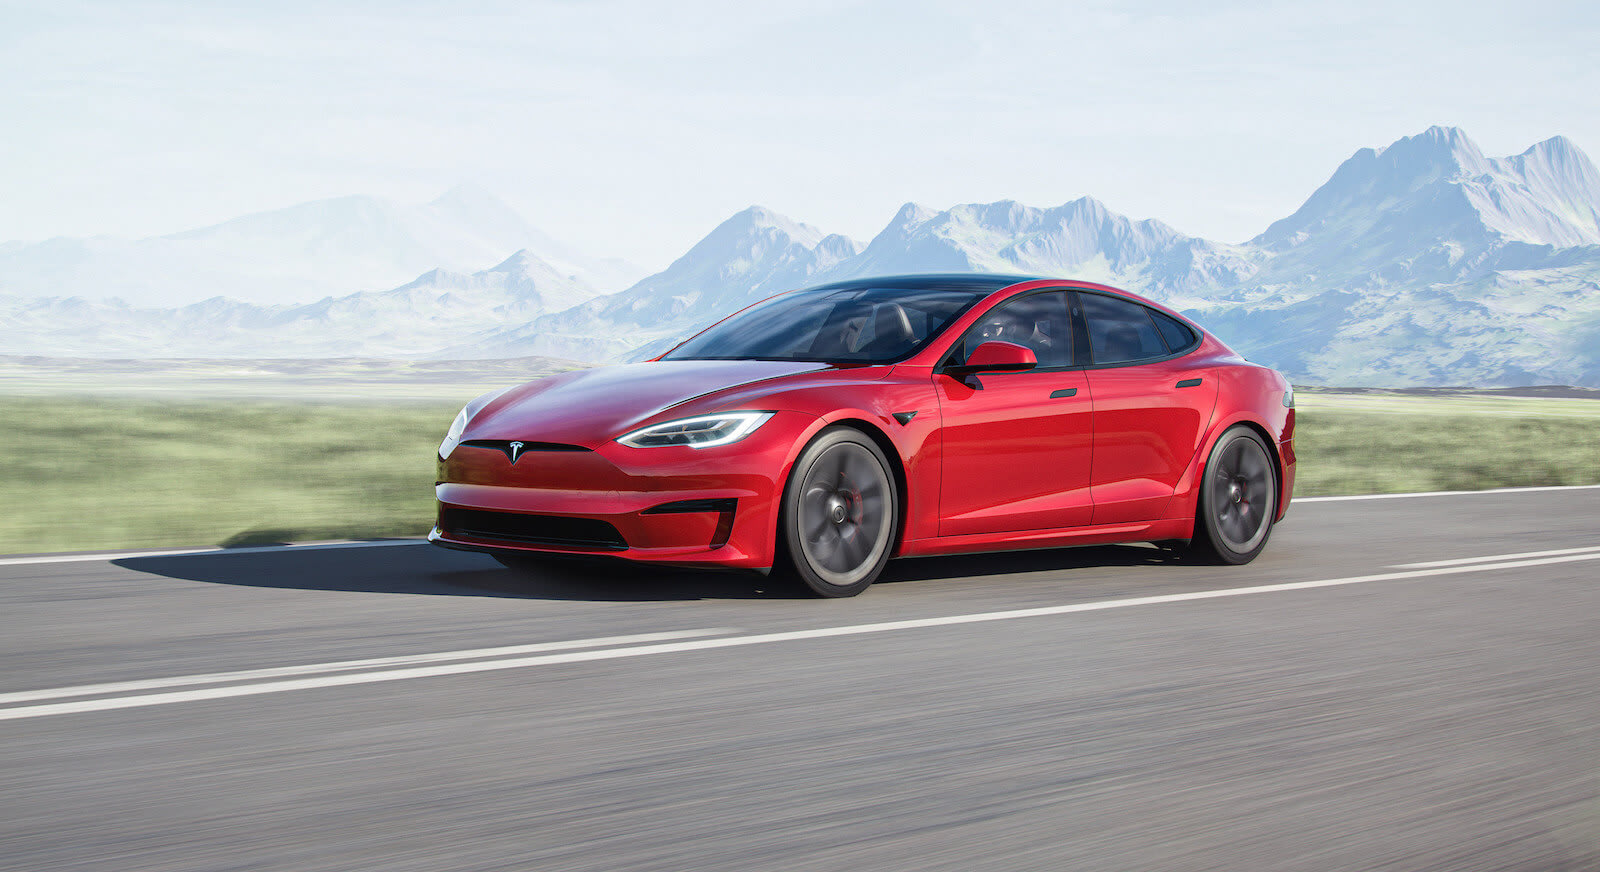 Tesla Model S driving fast with mountains in the background